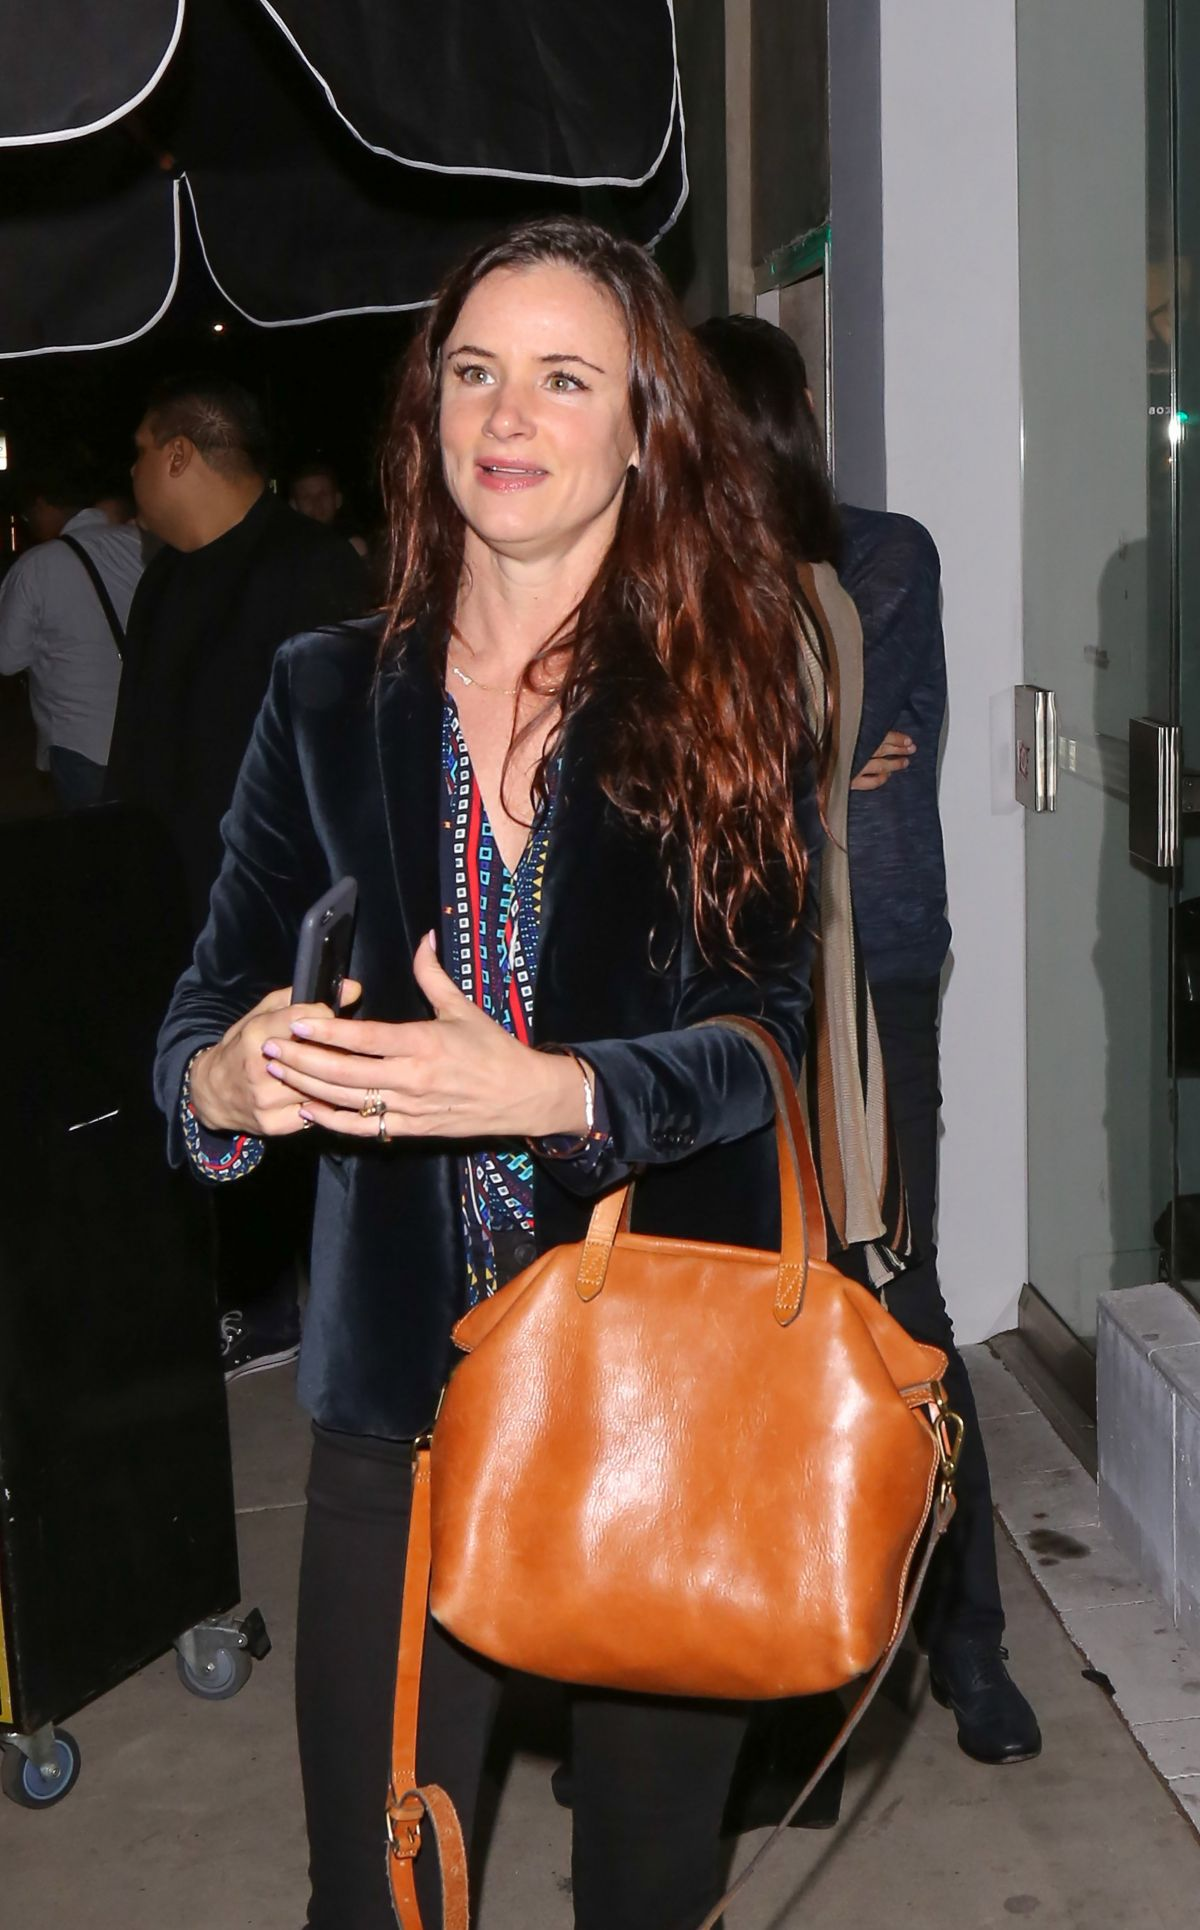 JULIETTE LEWIS at De Re Gallery in Los Angeles 05/05/2017